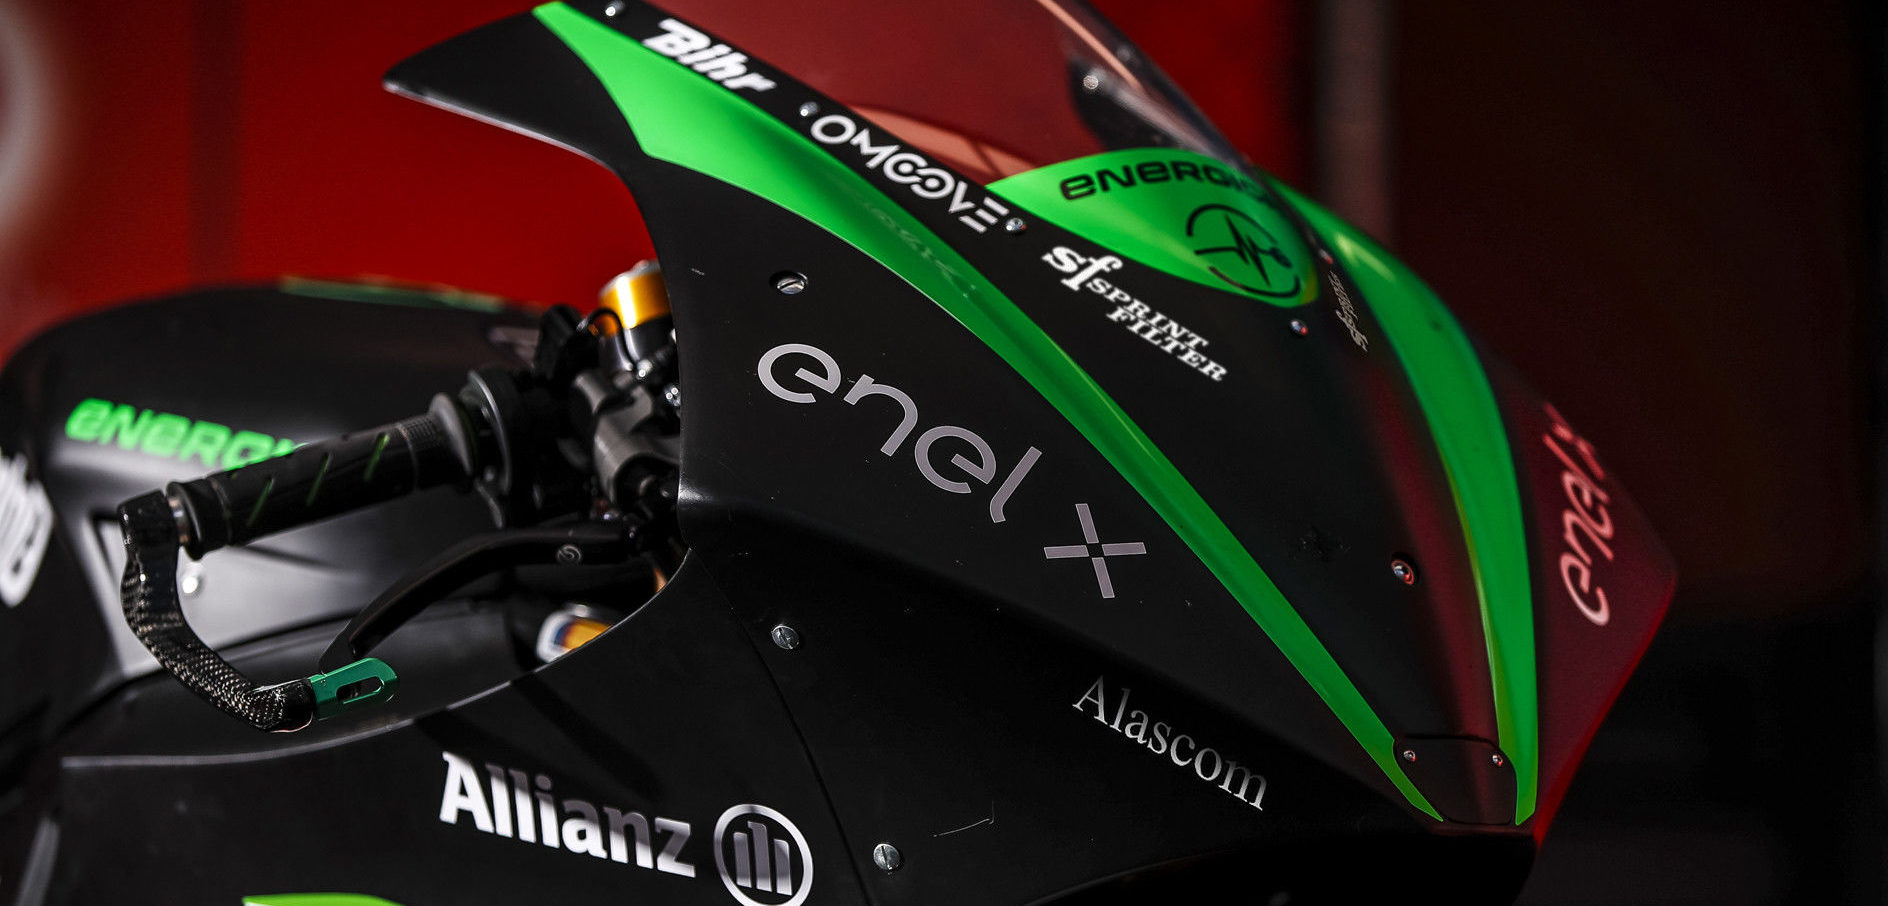 Sprint Filter has signed on as a racing technical partner of Energica Motor Company for the 2020 MotoE World Cup. Photo courtesy of Energica.